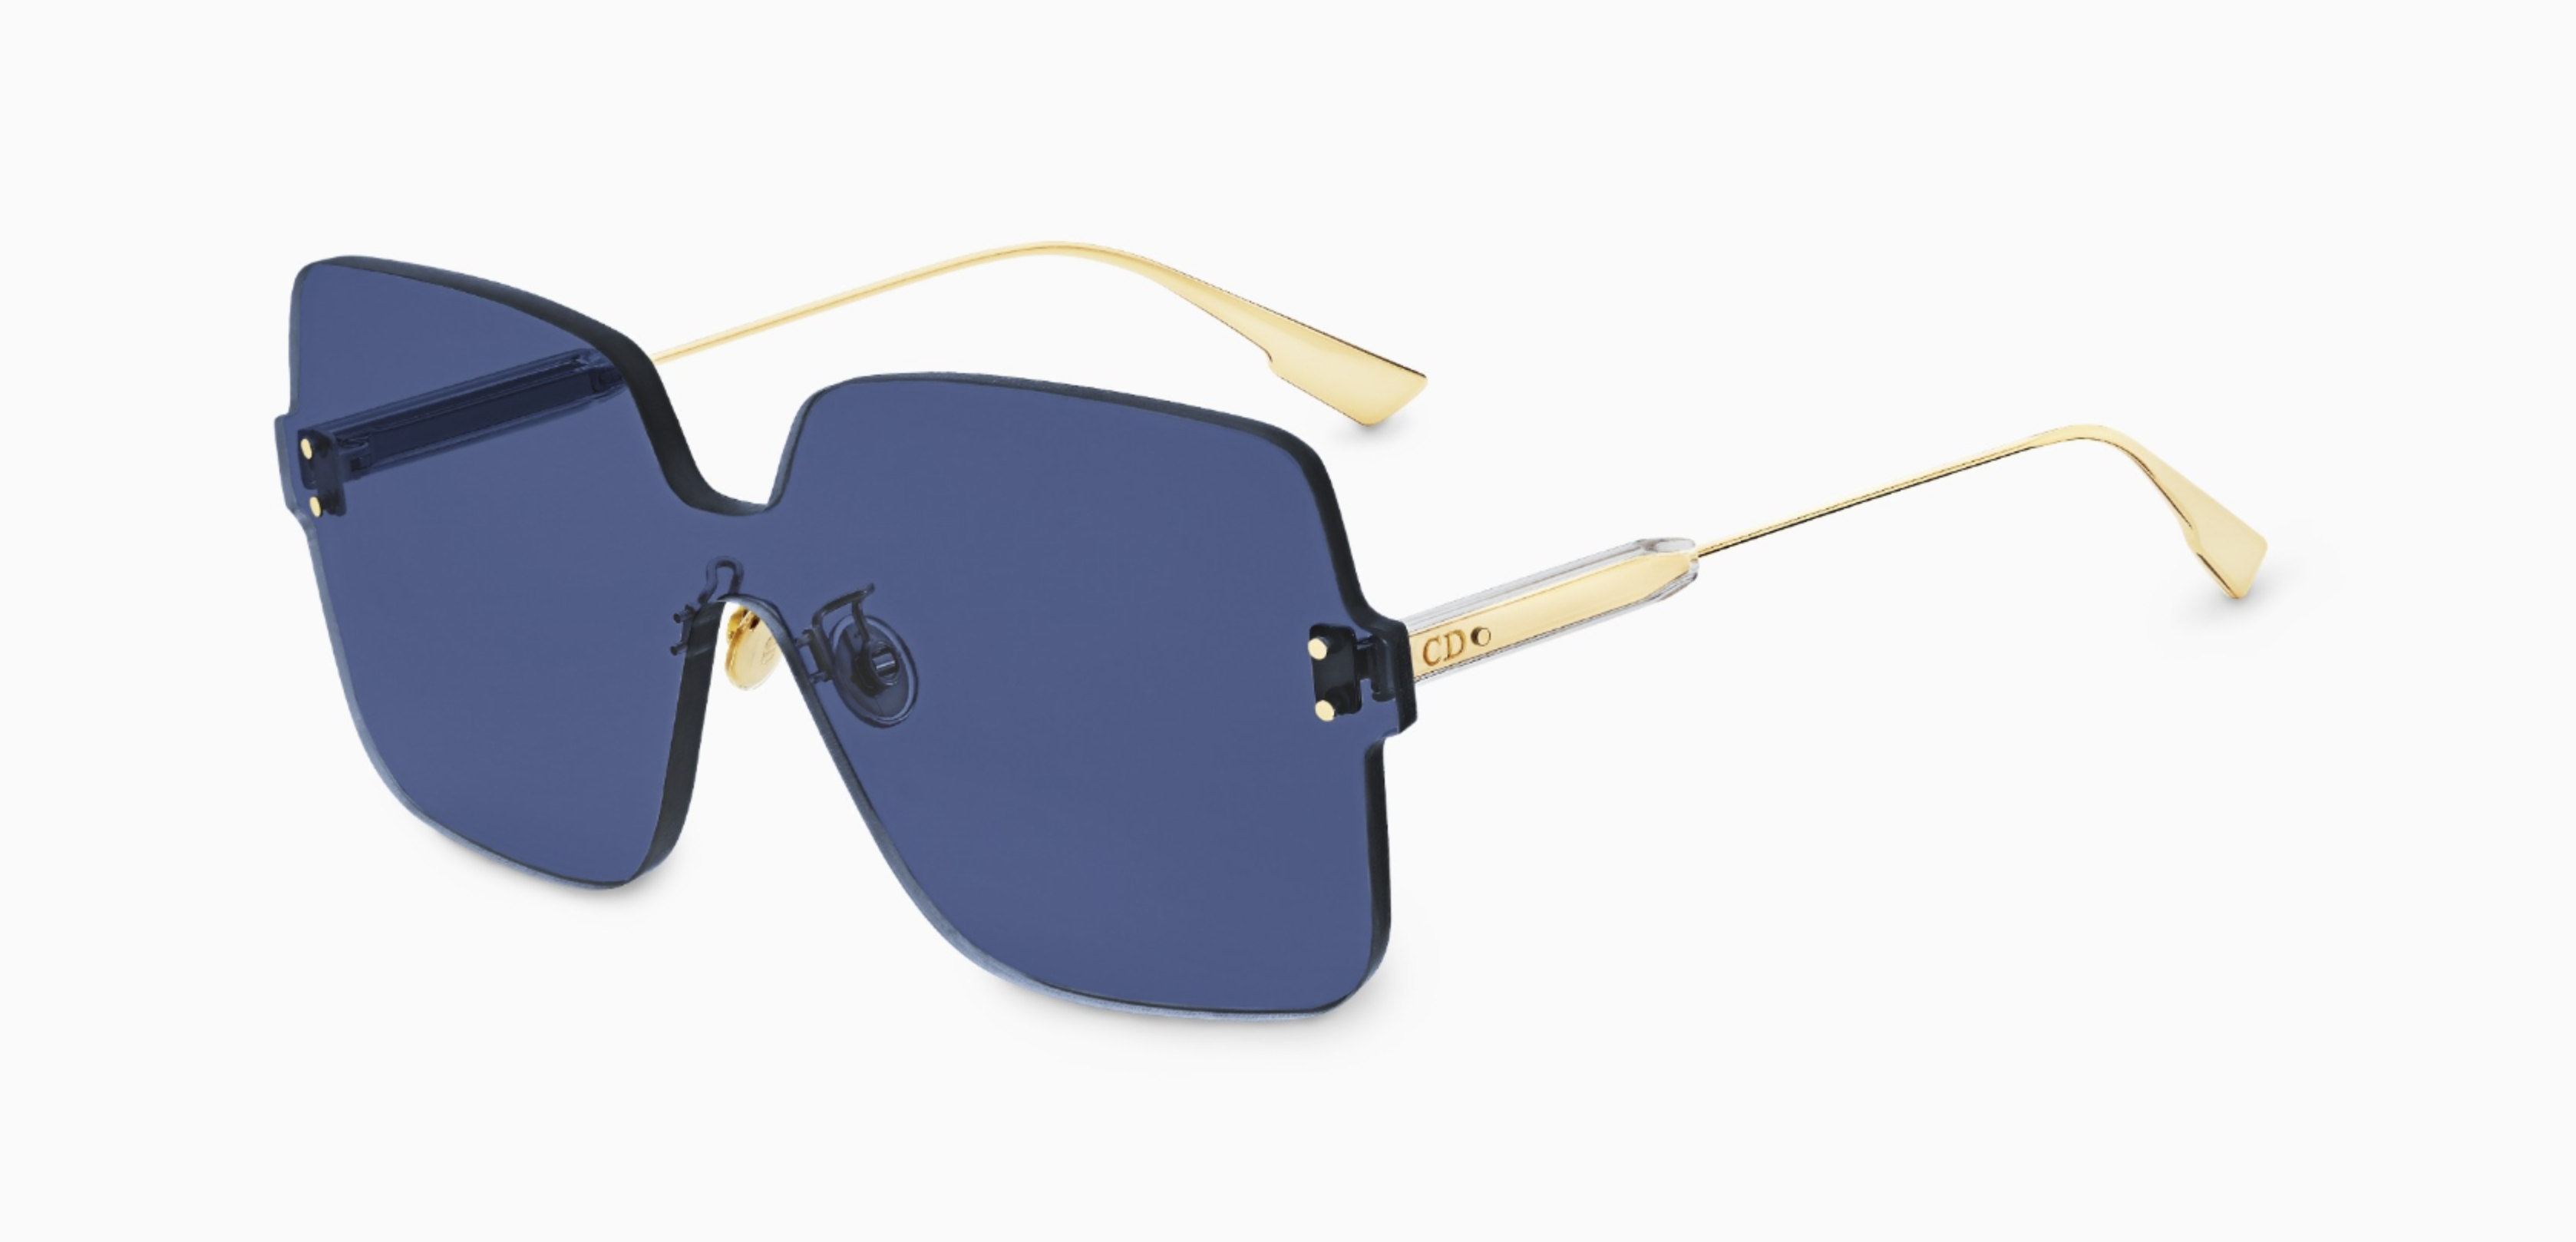 6ba7afb6033 Furthermore you can find a form of the frame a little bit different as the  Oversized of the Dior Color Quake 2